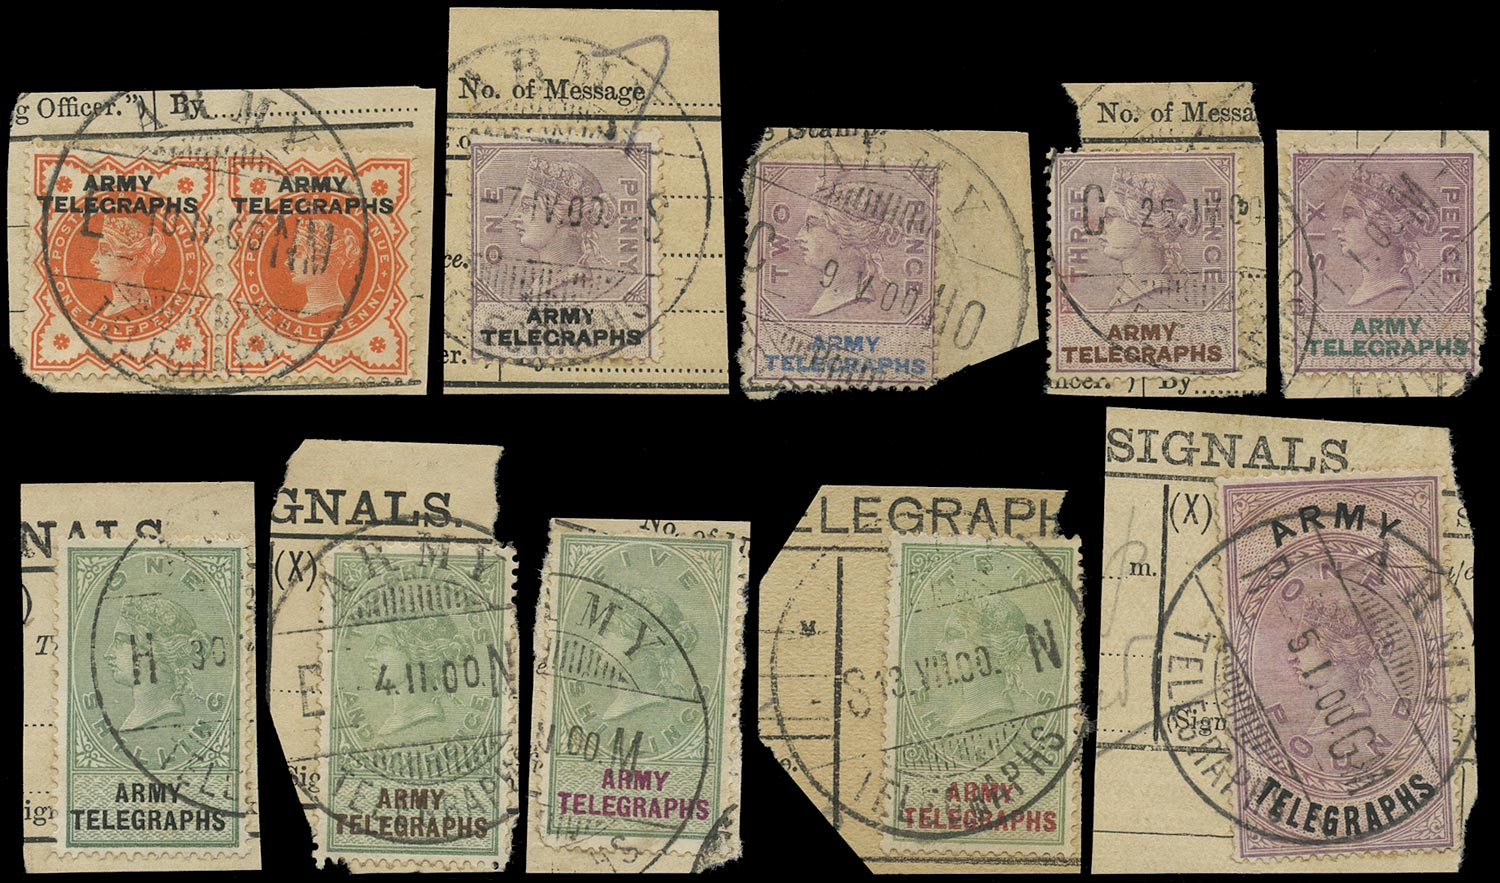 SOUTH AFRICA 1899  SGAT1, 3-6, 8-12 Telegraph ½d to £1 Army Telegraphs used